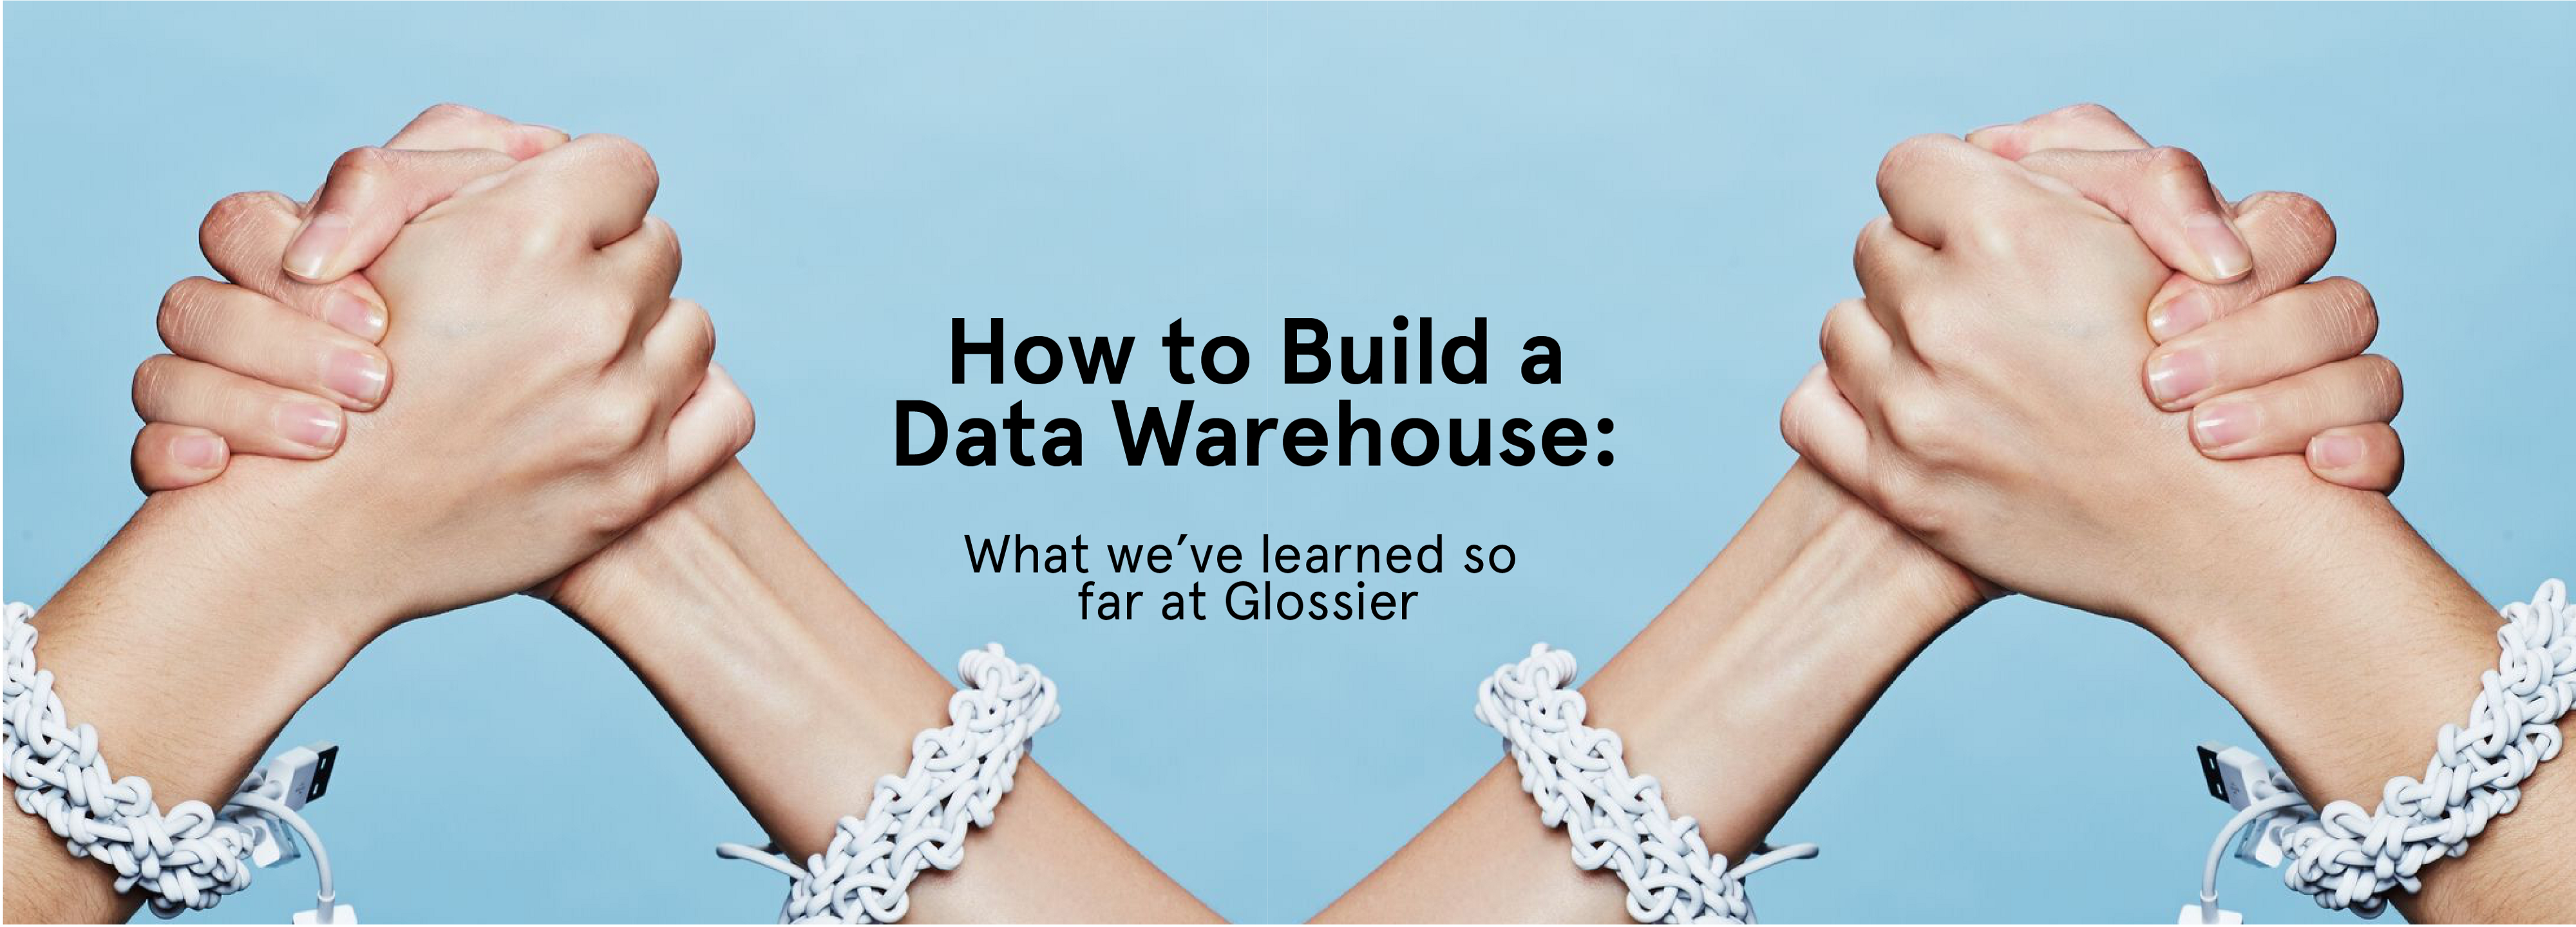 How to Build a Data Warehouse: What We've Learned So Far at